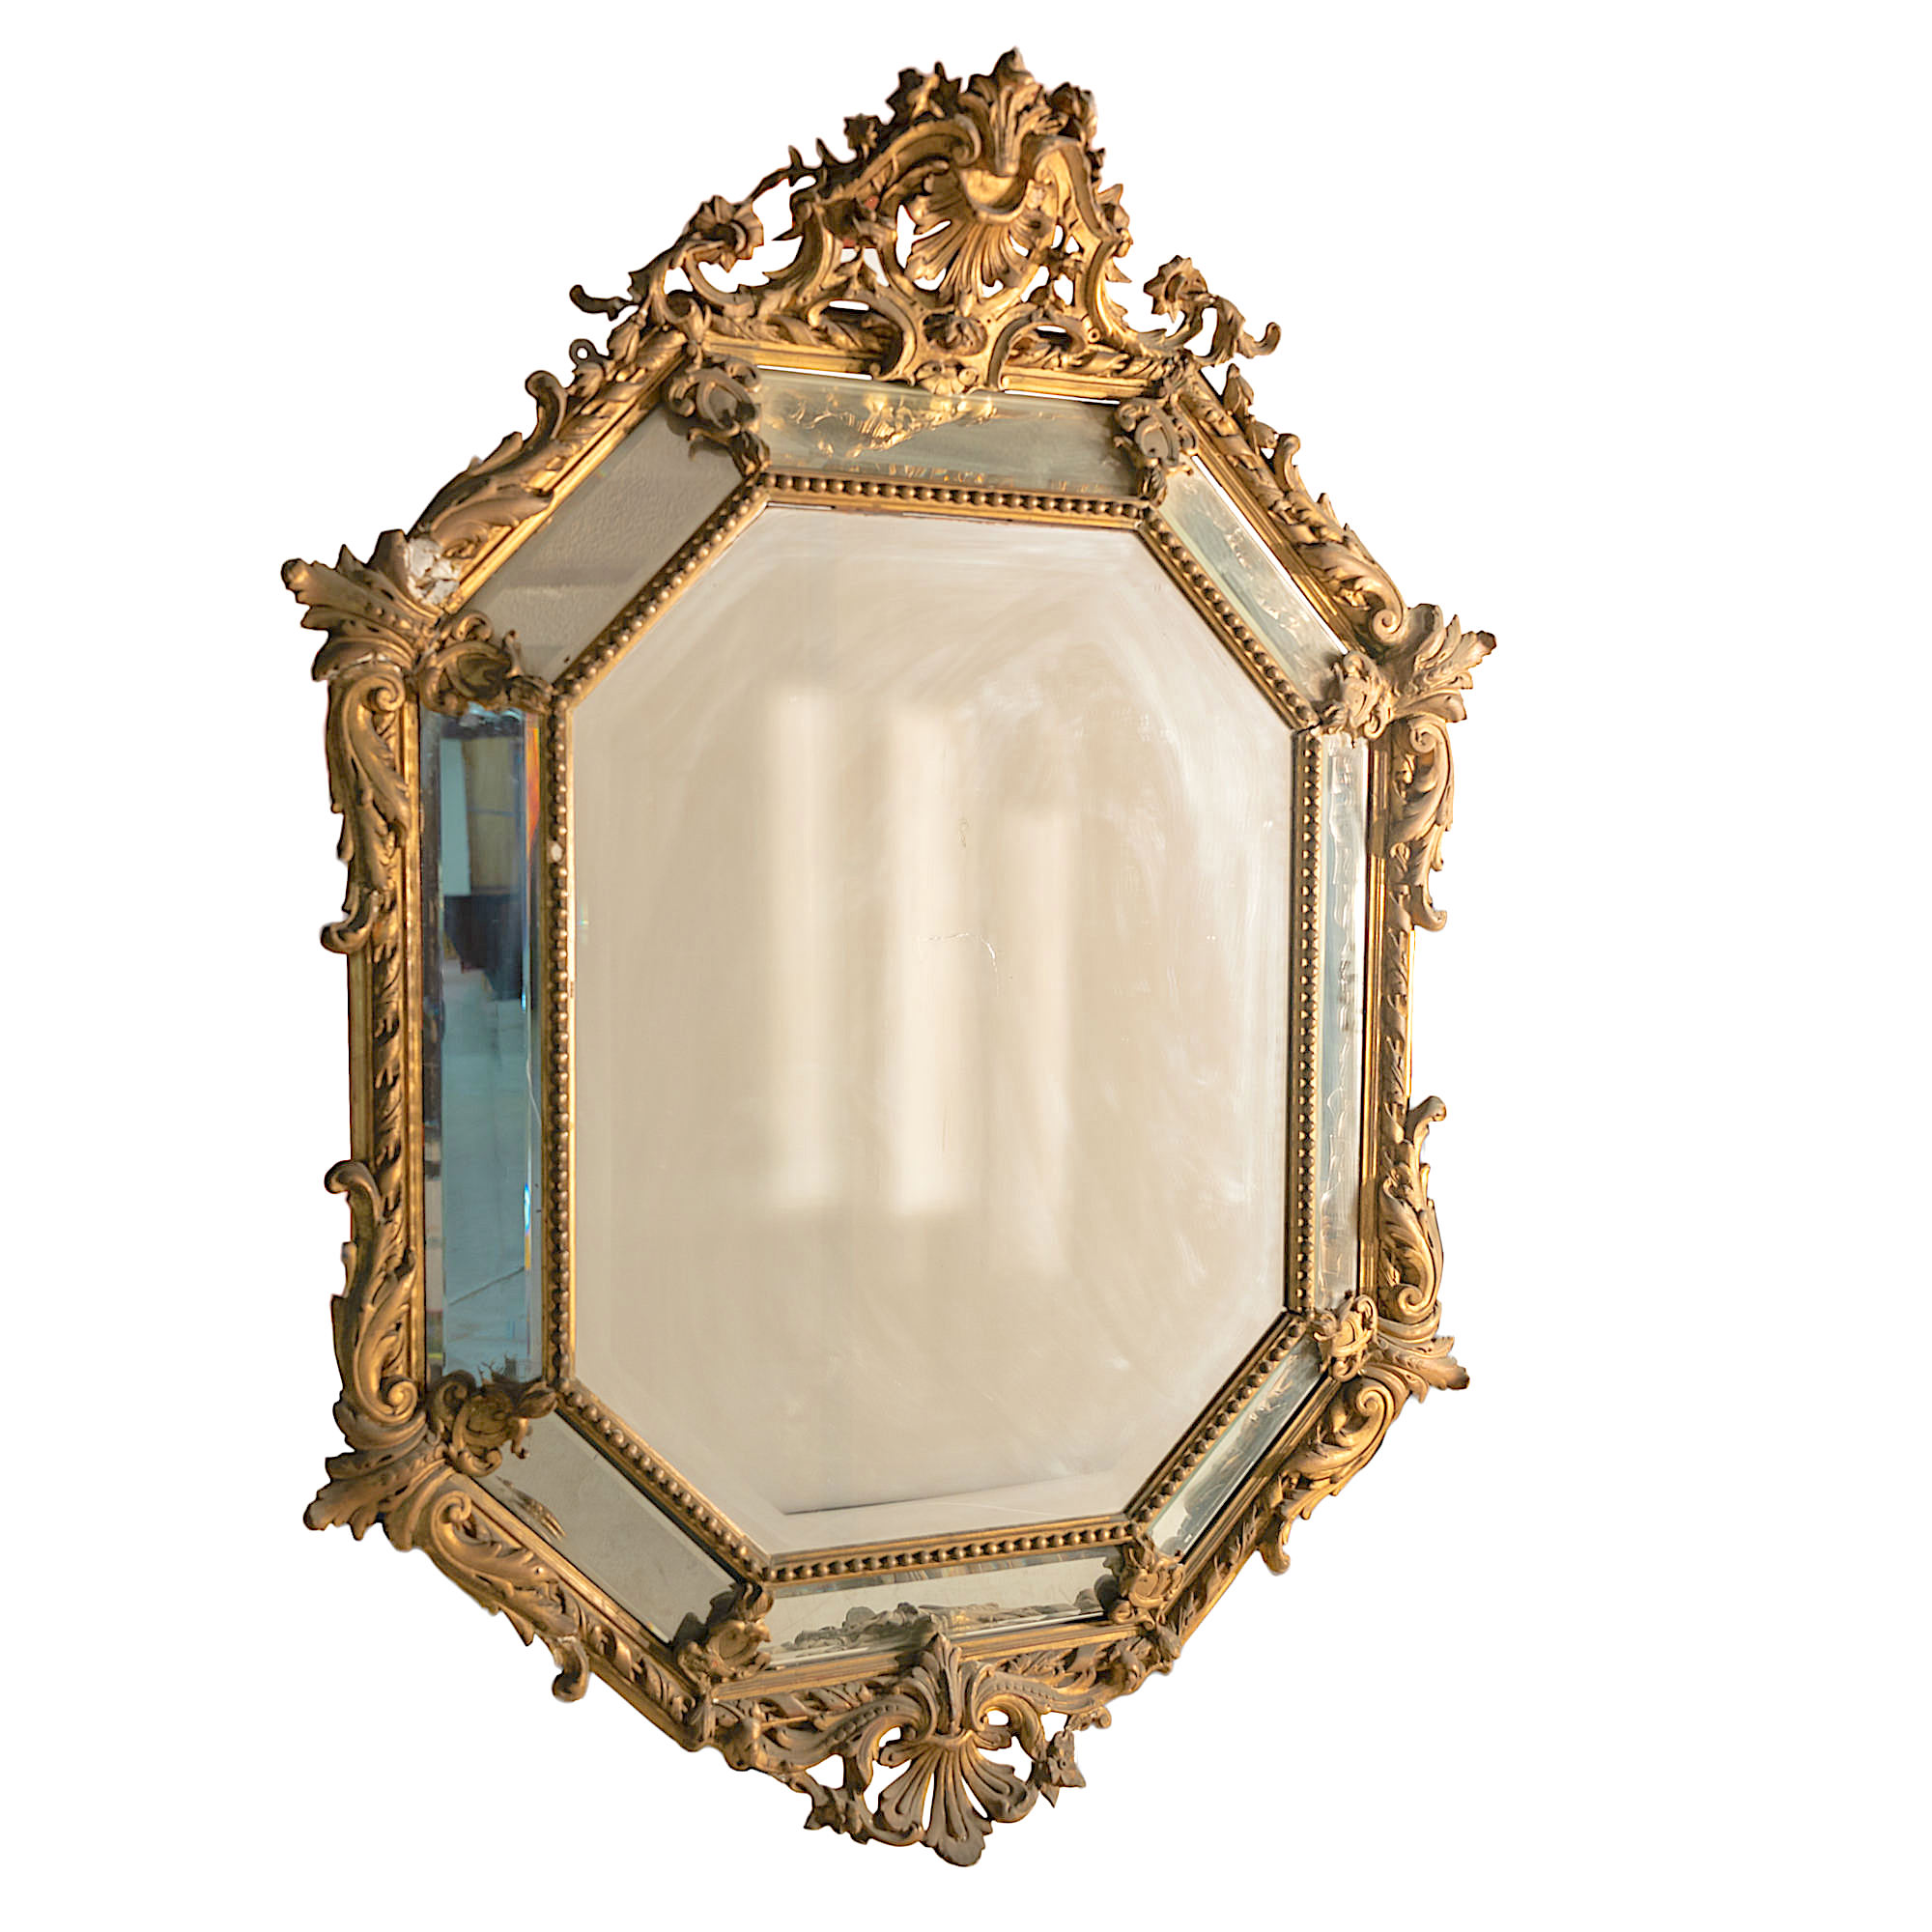 'Impressive 19th Century Carved Giltwood Salon Mirror with Bevelled Glass Plates'